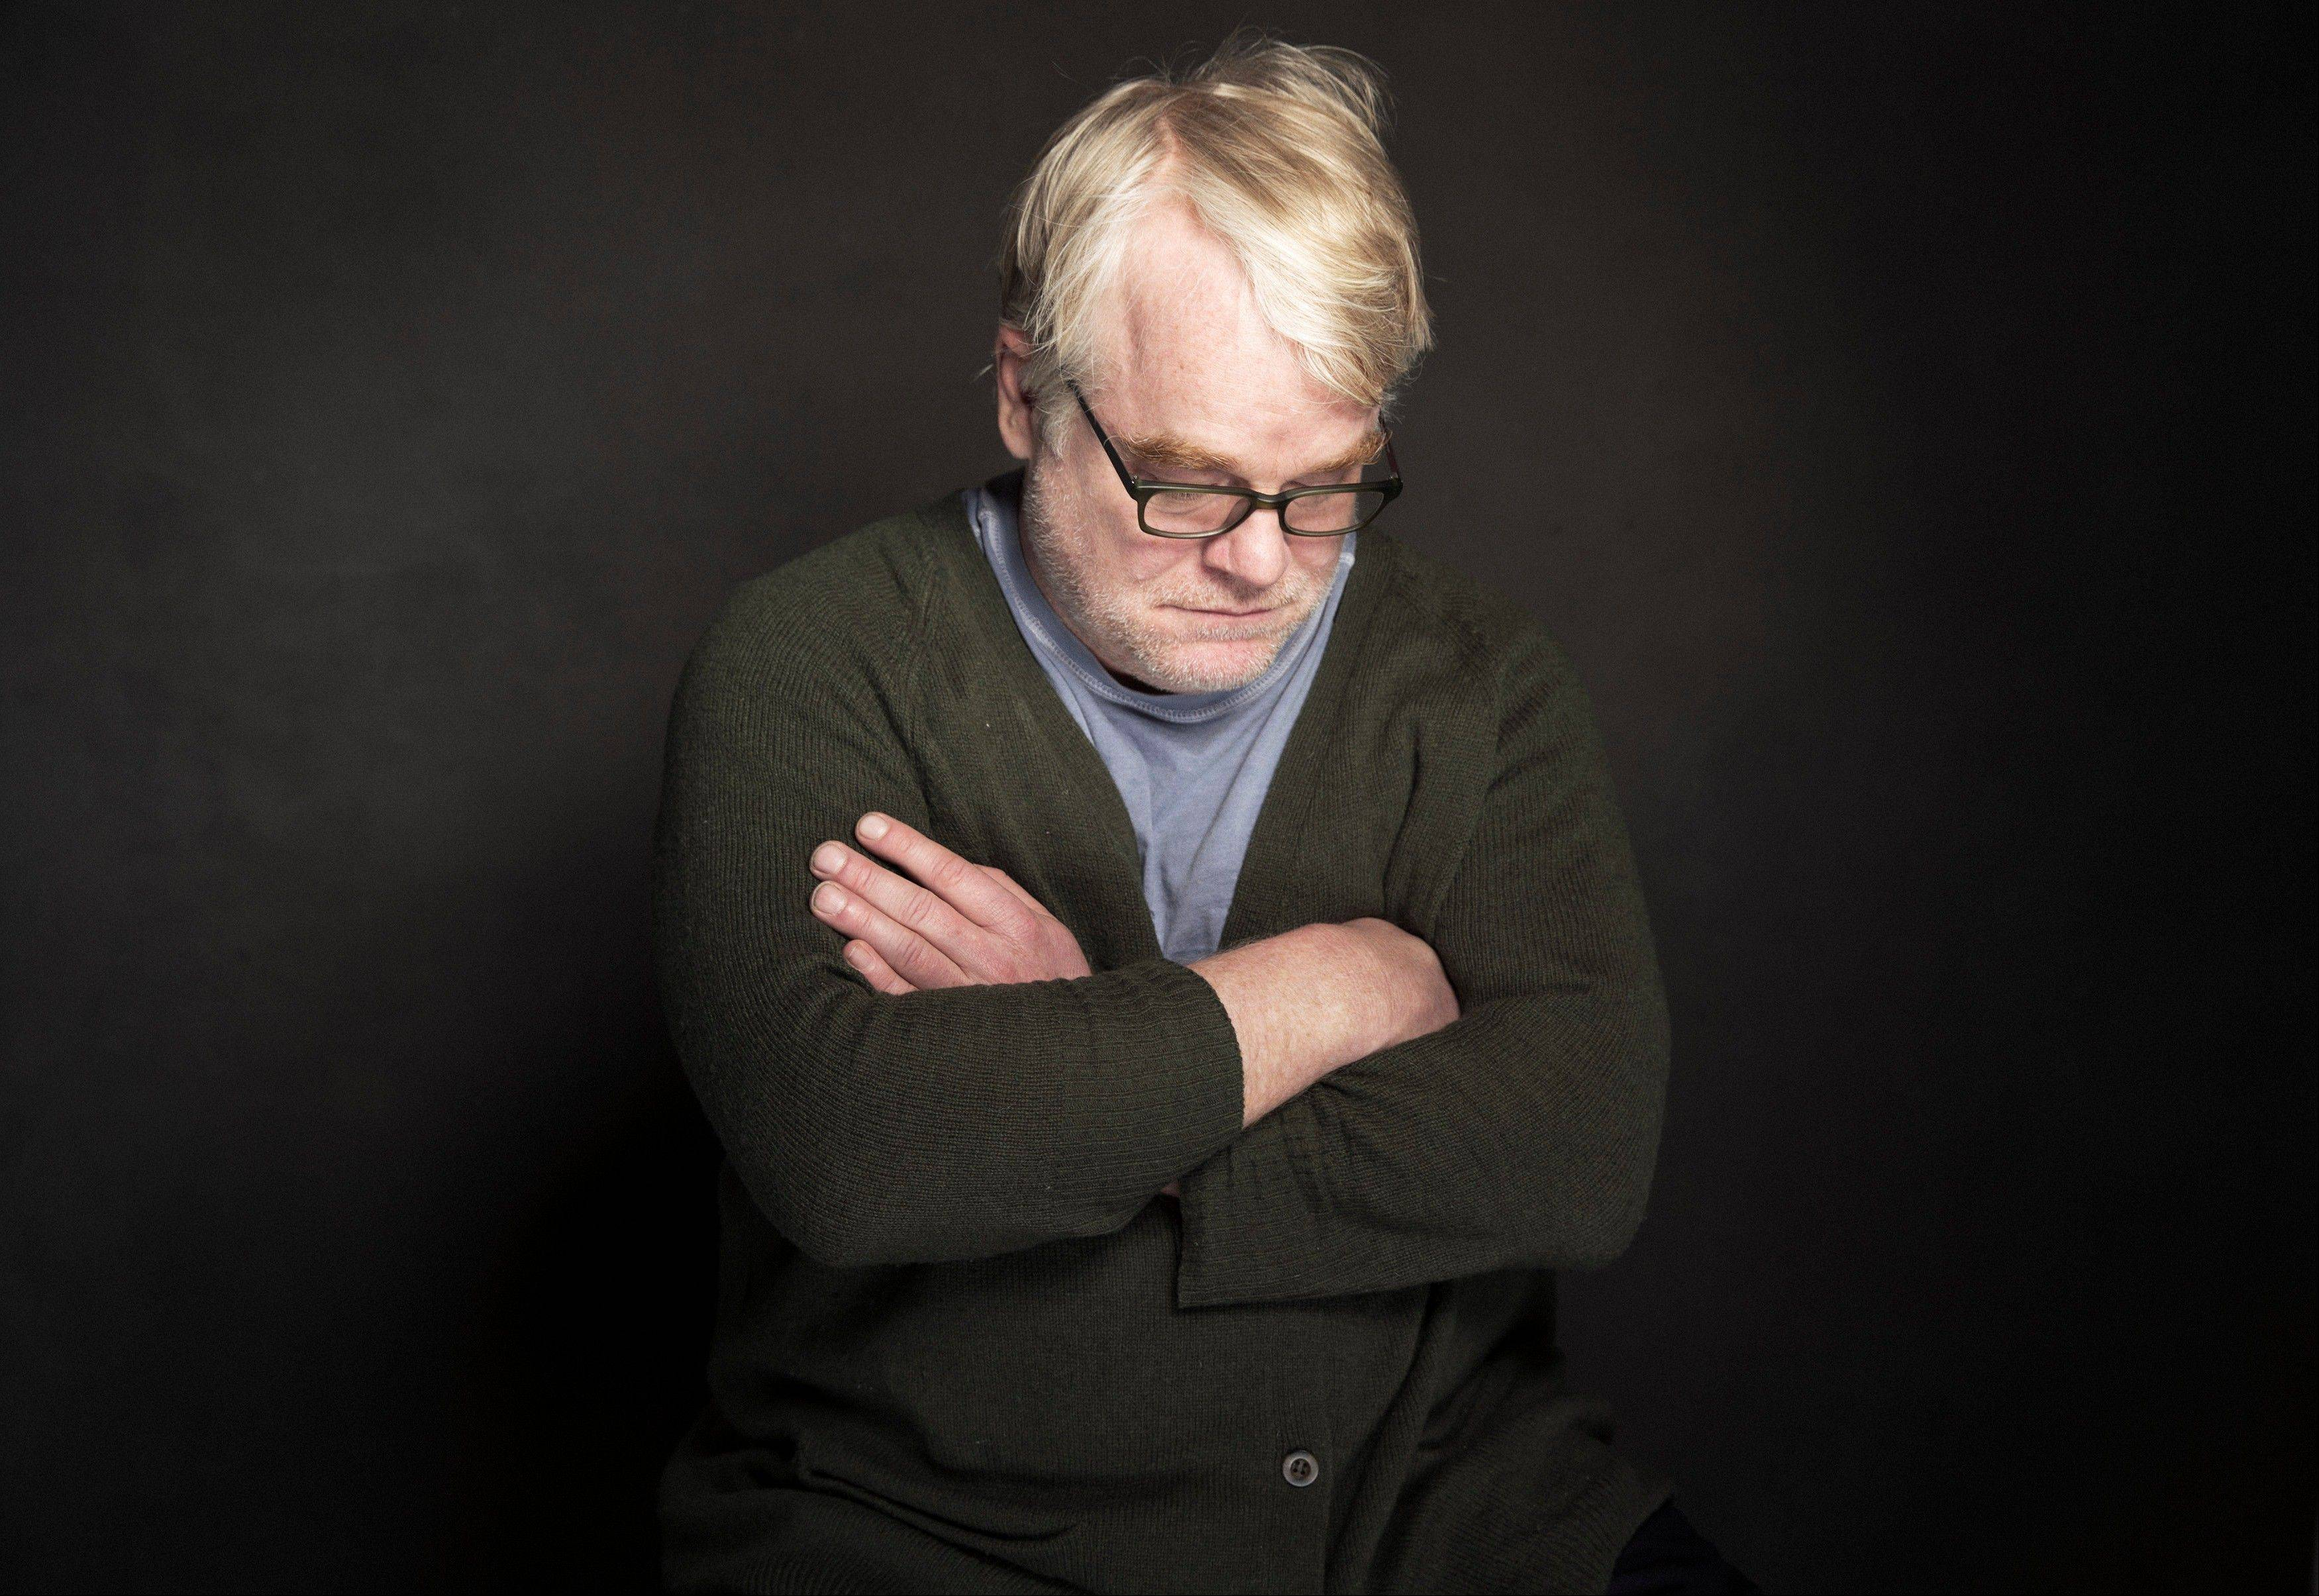 Phillip Seymour Hoffman posing for a portrait at The Collective and Gibson Lounge Powered by CEG, during the Sundance Film Festival, in Park City, Utah, last Jan. 19.